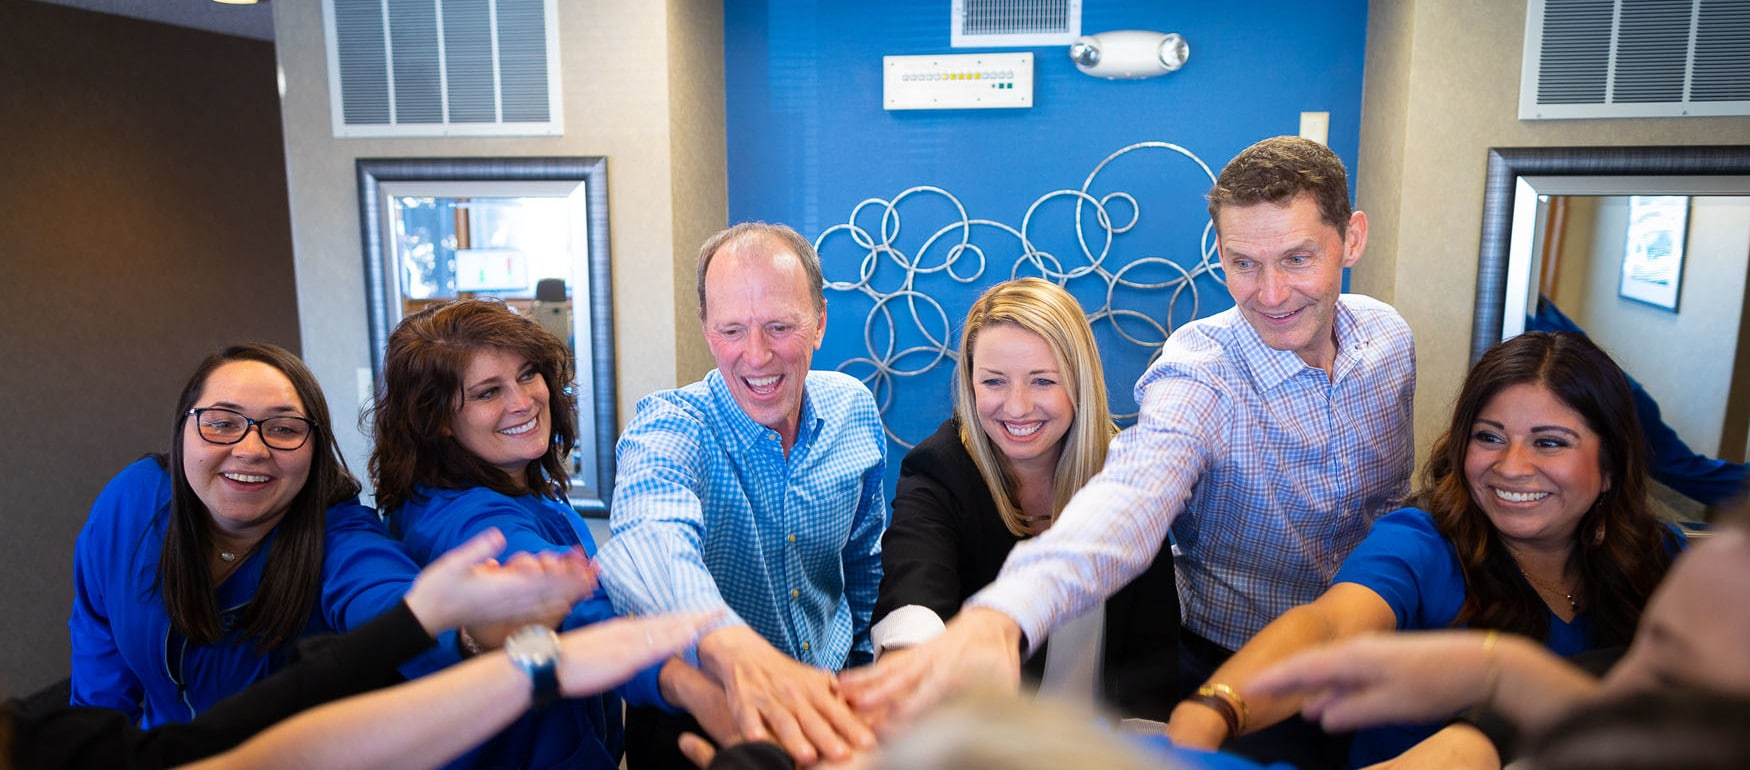 Doctor Candids HWH Ortho 2020 Topeka KS Orthodontist 121 2 1750x770 - Home Page